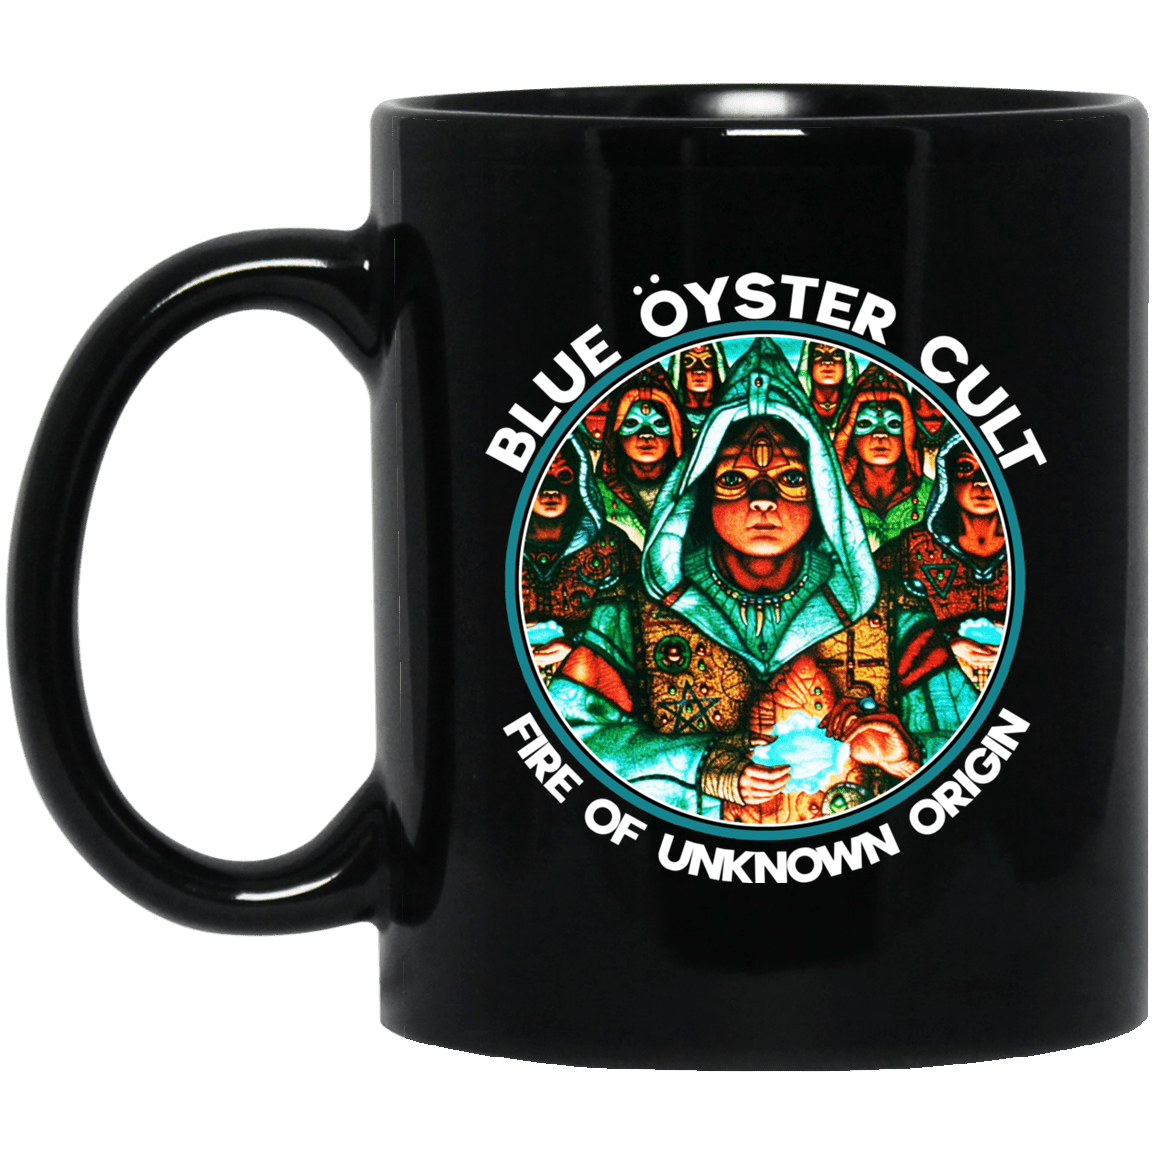 Blue Öyster Cult Fire Of Unknown Origin Mug 1065-10181-88282972-49307 - Tee Ript